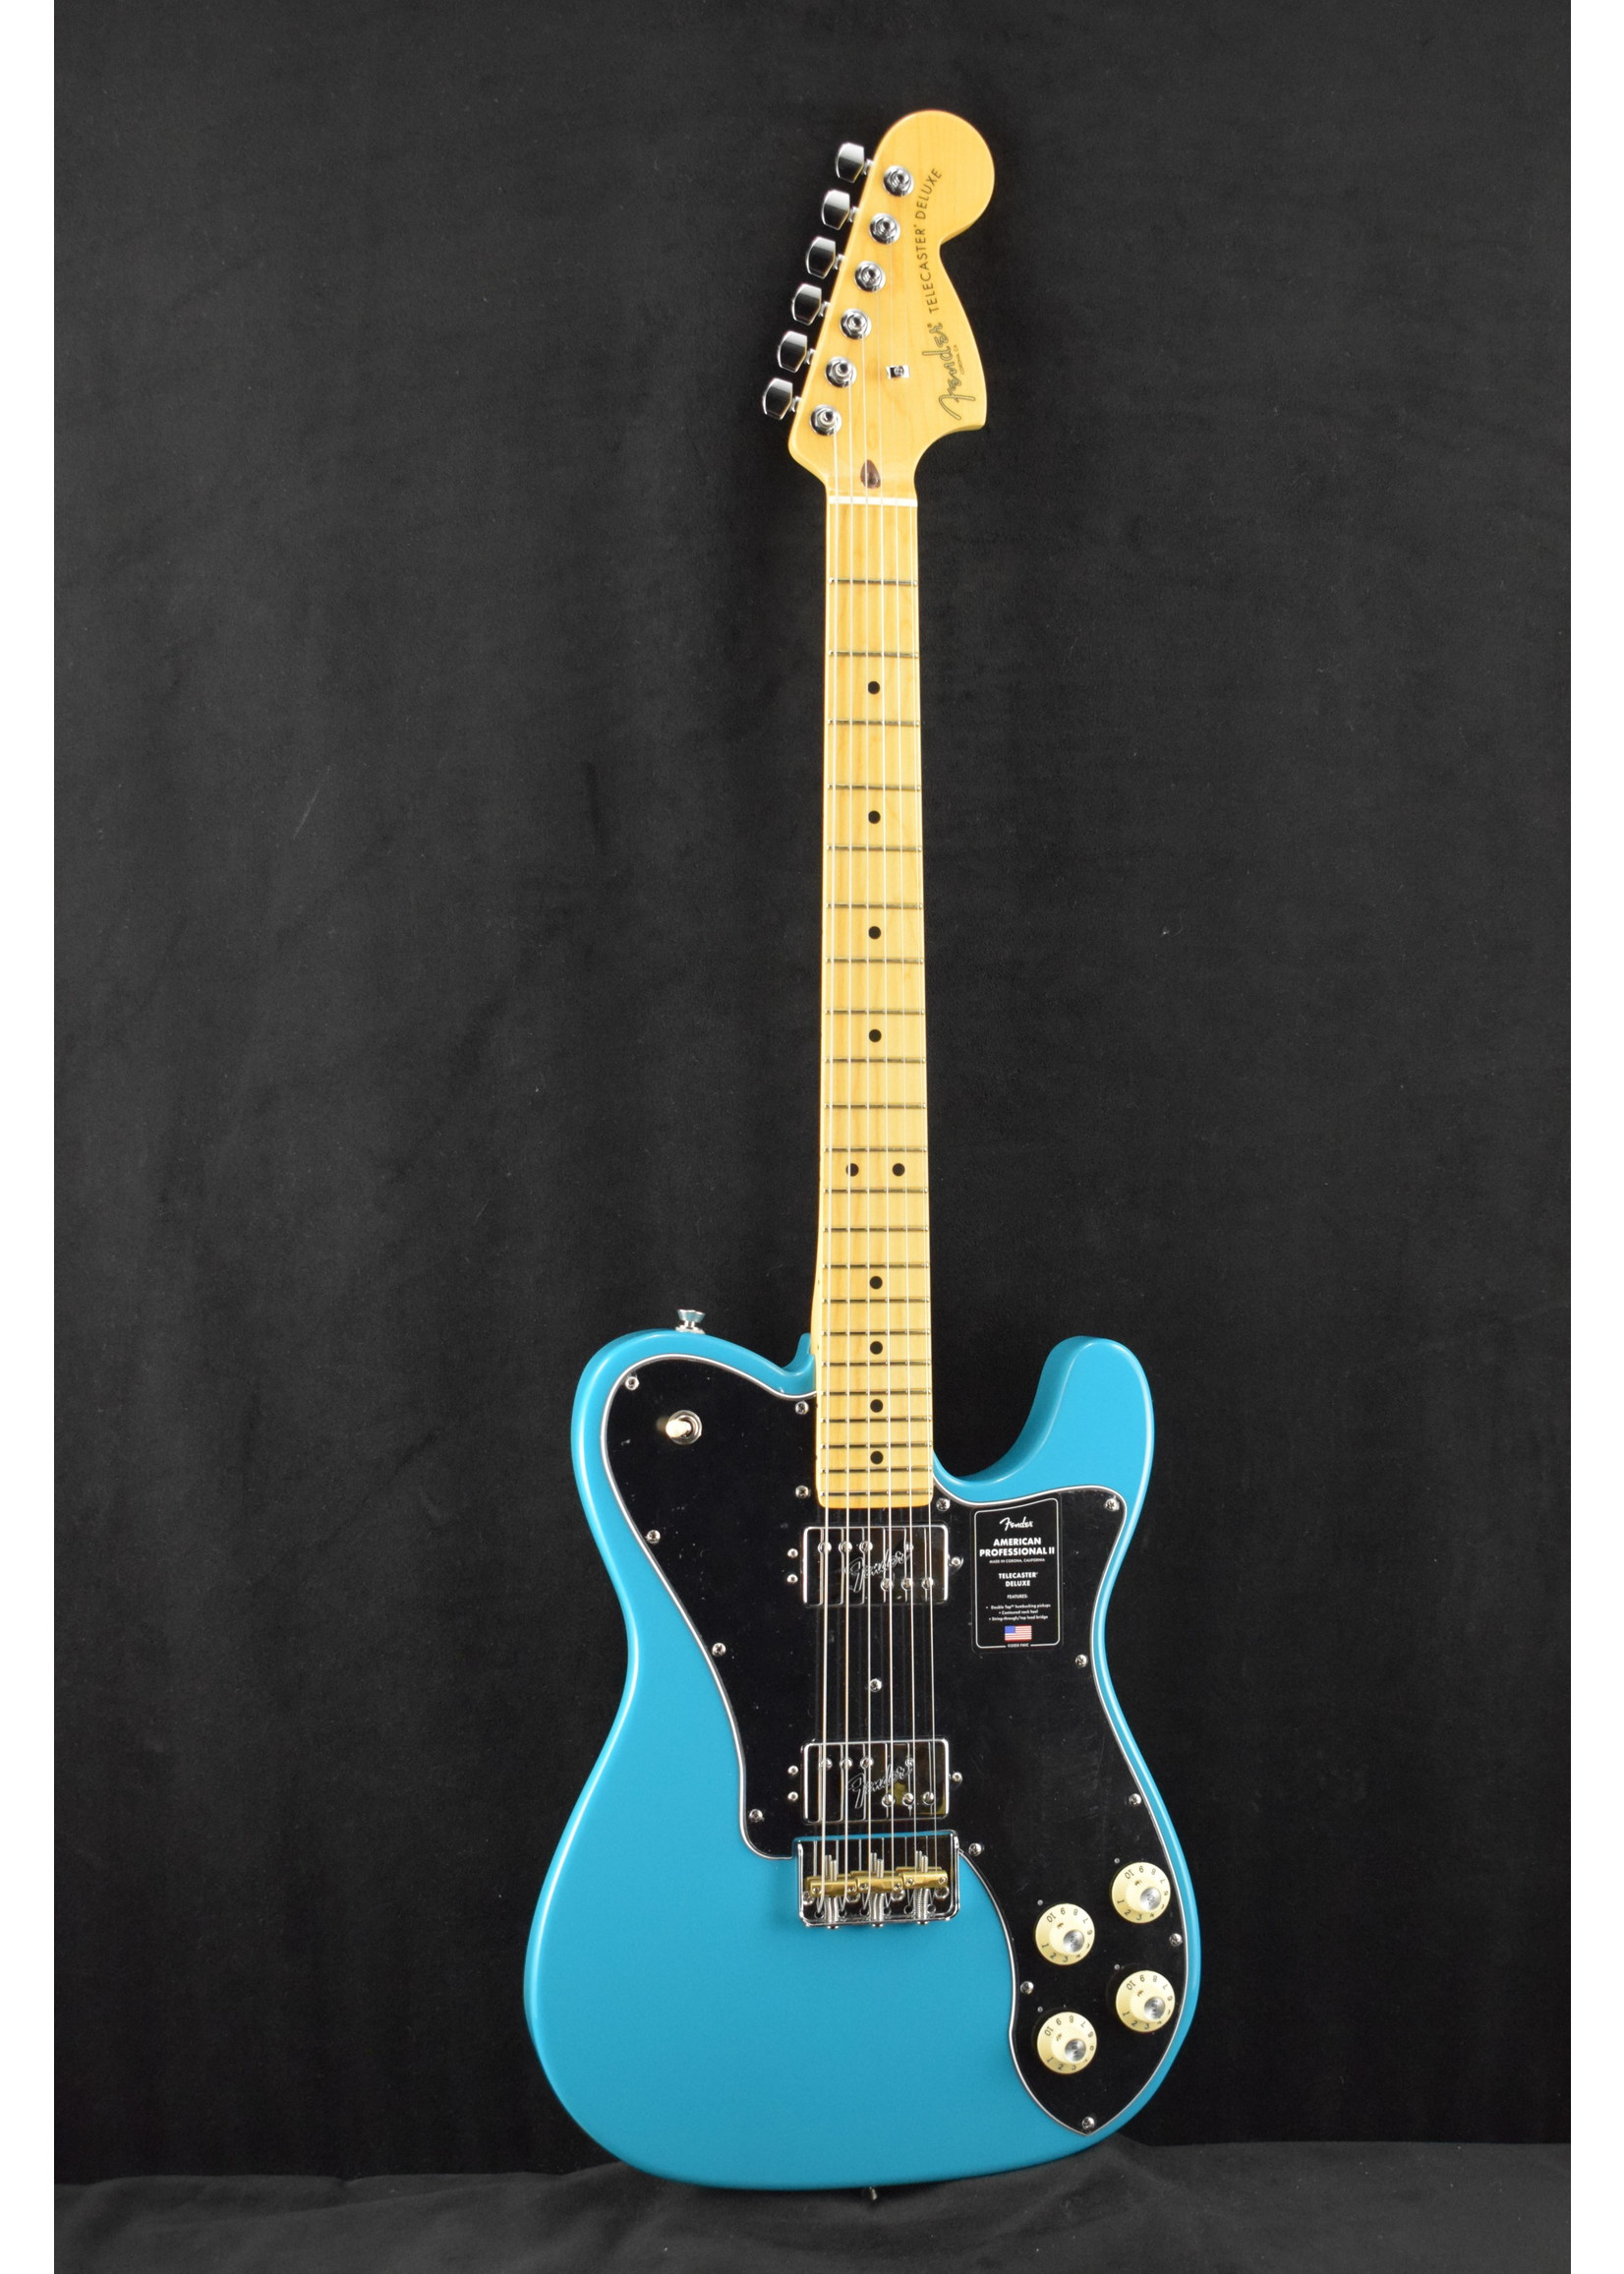 Fender Fender American Professional II Telecaster Deluxe with Maple Fretboard Miami Blue